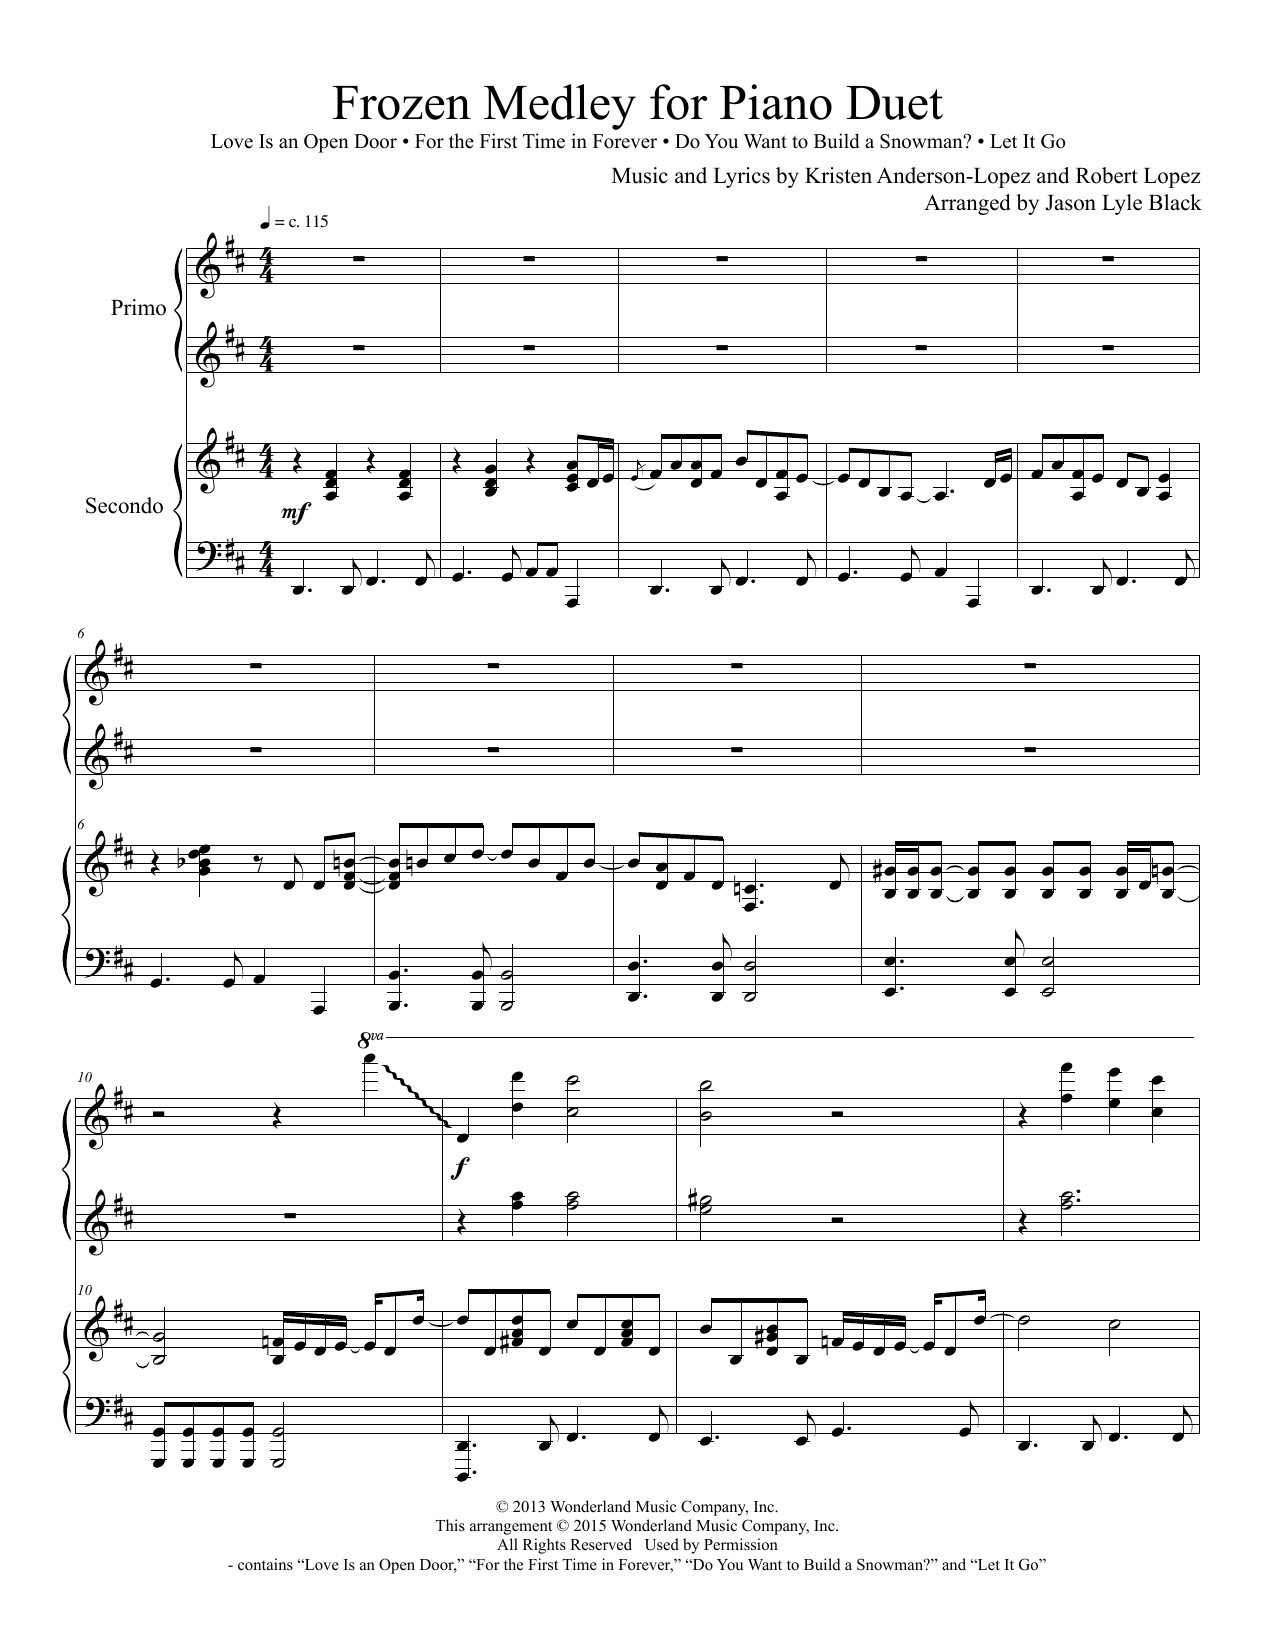 Frozen Medley for Piano Duet Sheet Music